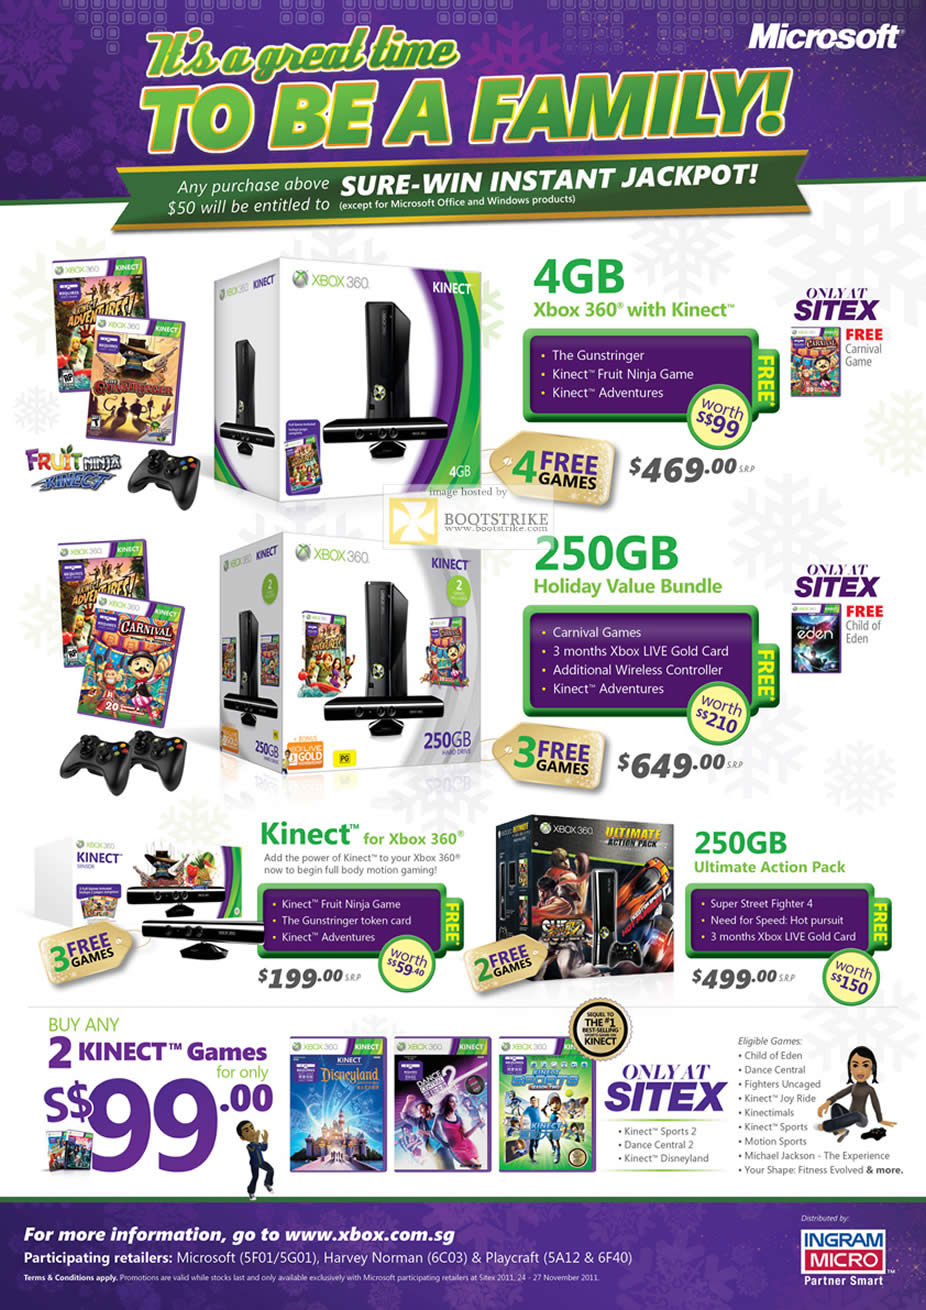 SITEX 2011 price list image brochure of Microsoft Xbox 360 With Kinect, Holiday Value Bundle 250GB, Ultimate Action Pack, Games